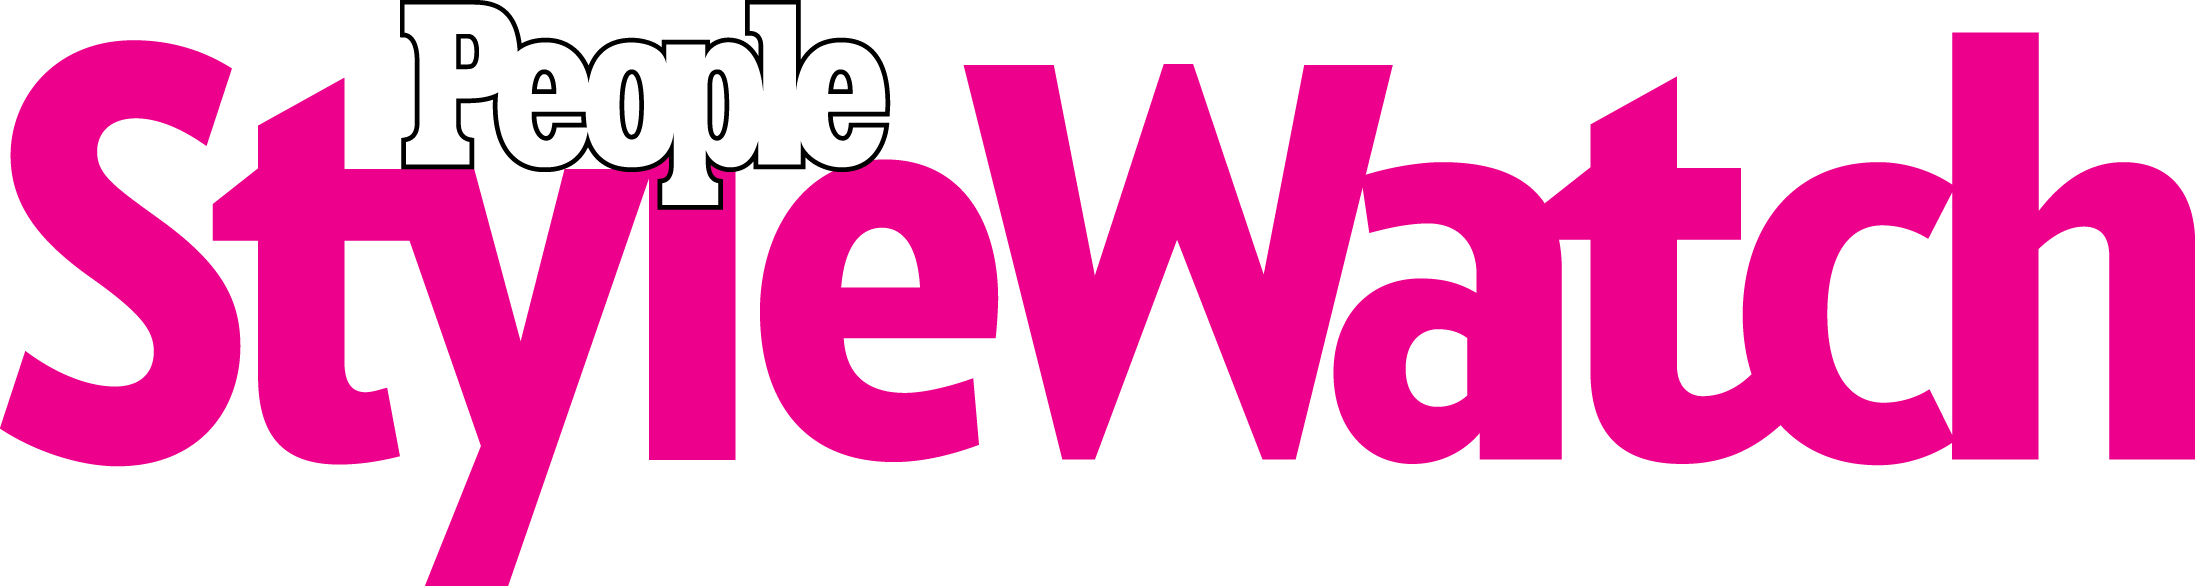 PeopleStyleWatch logo